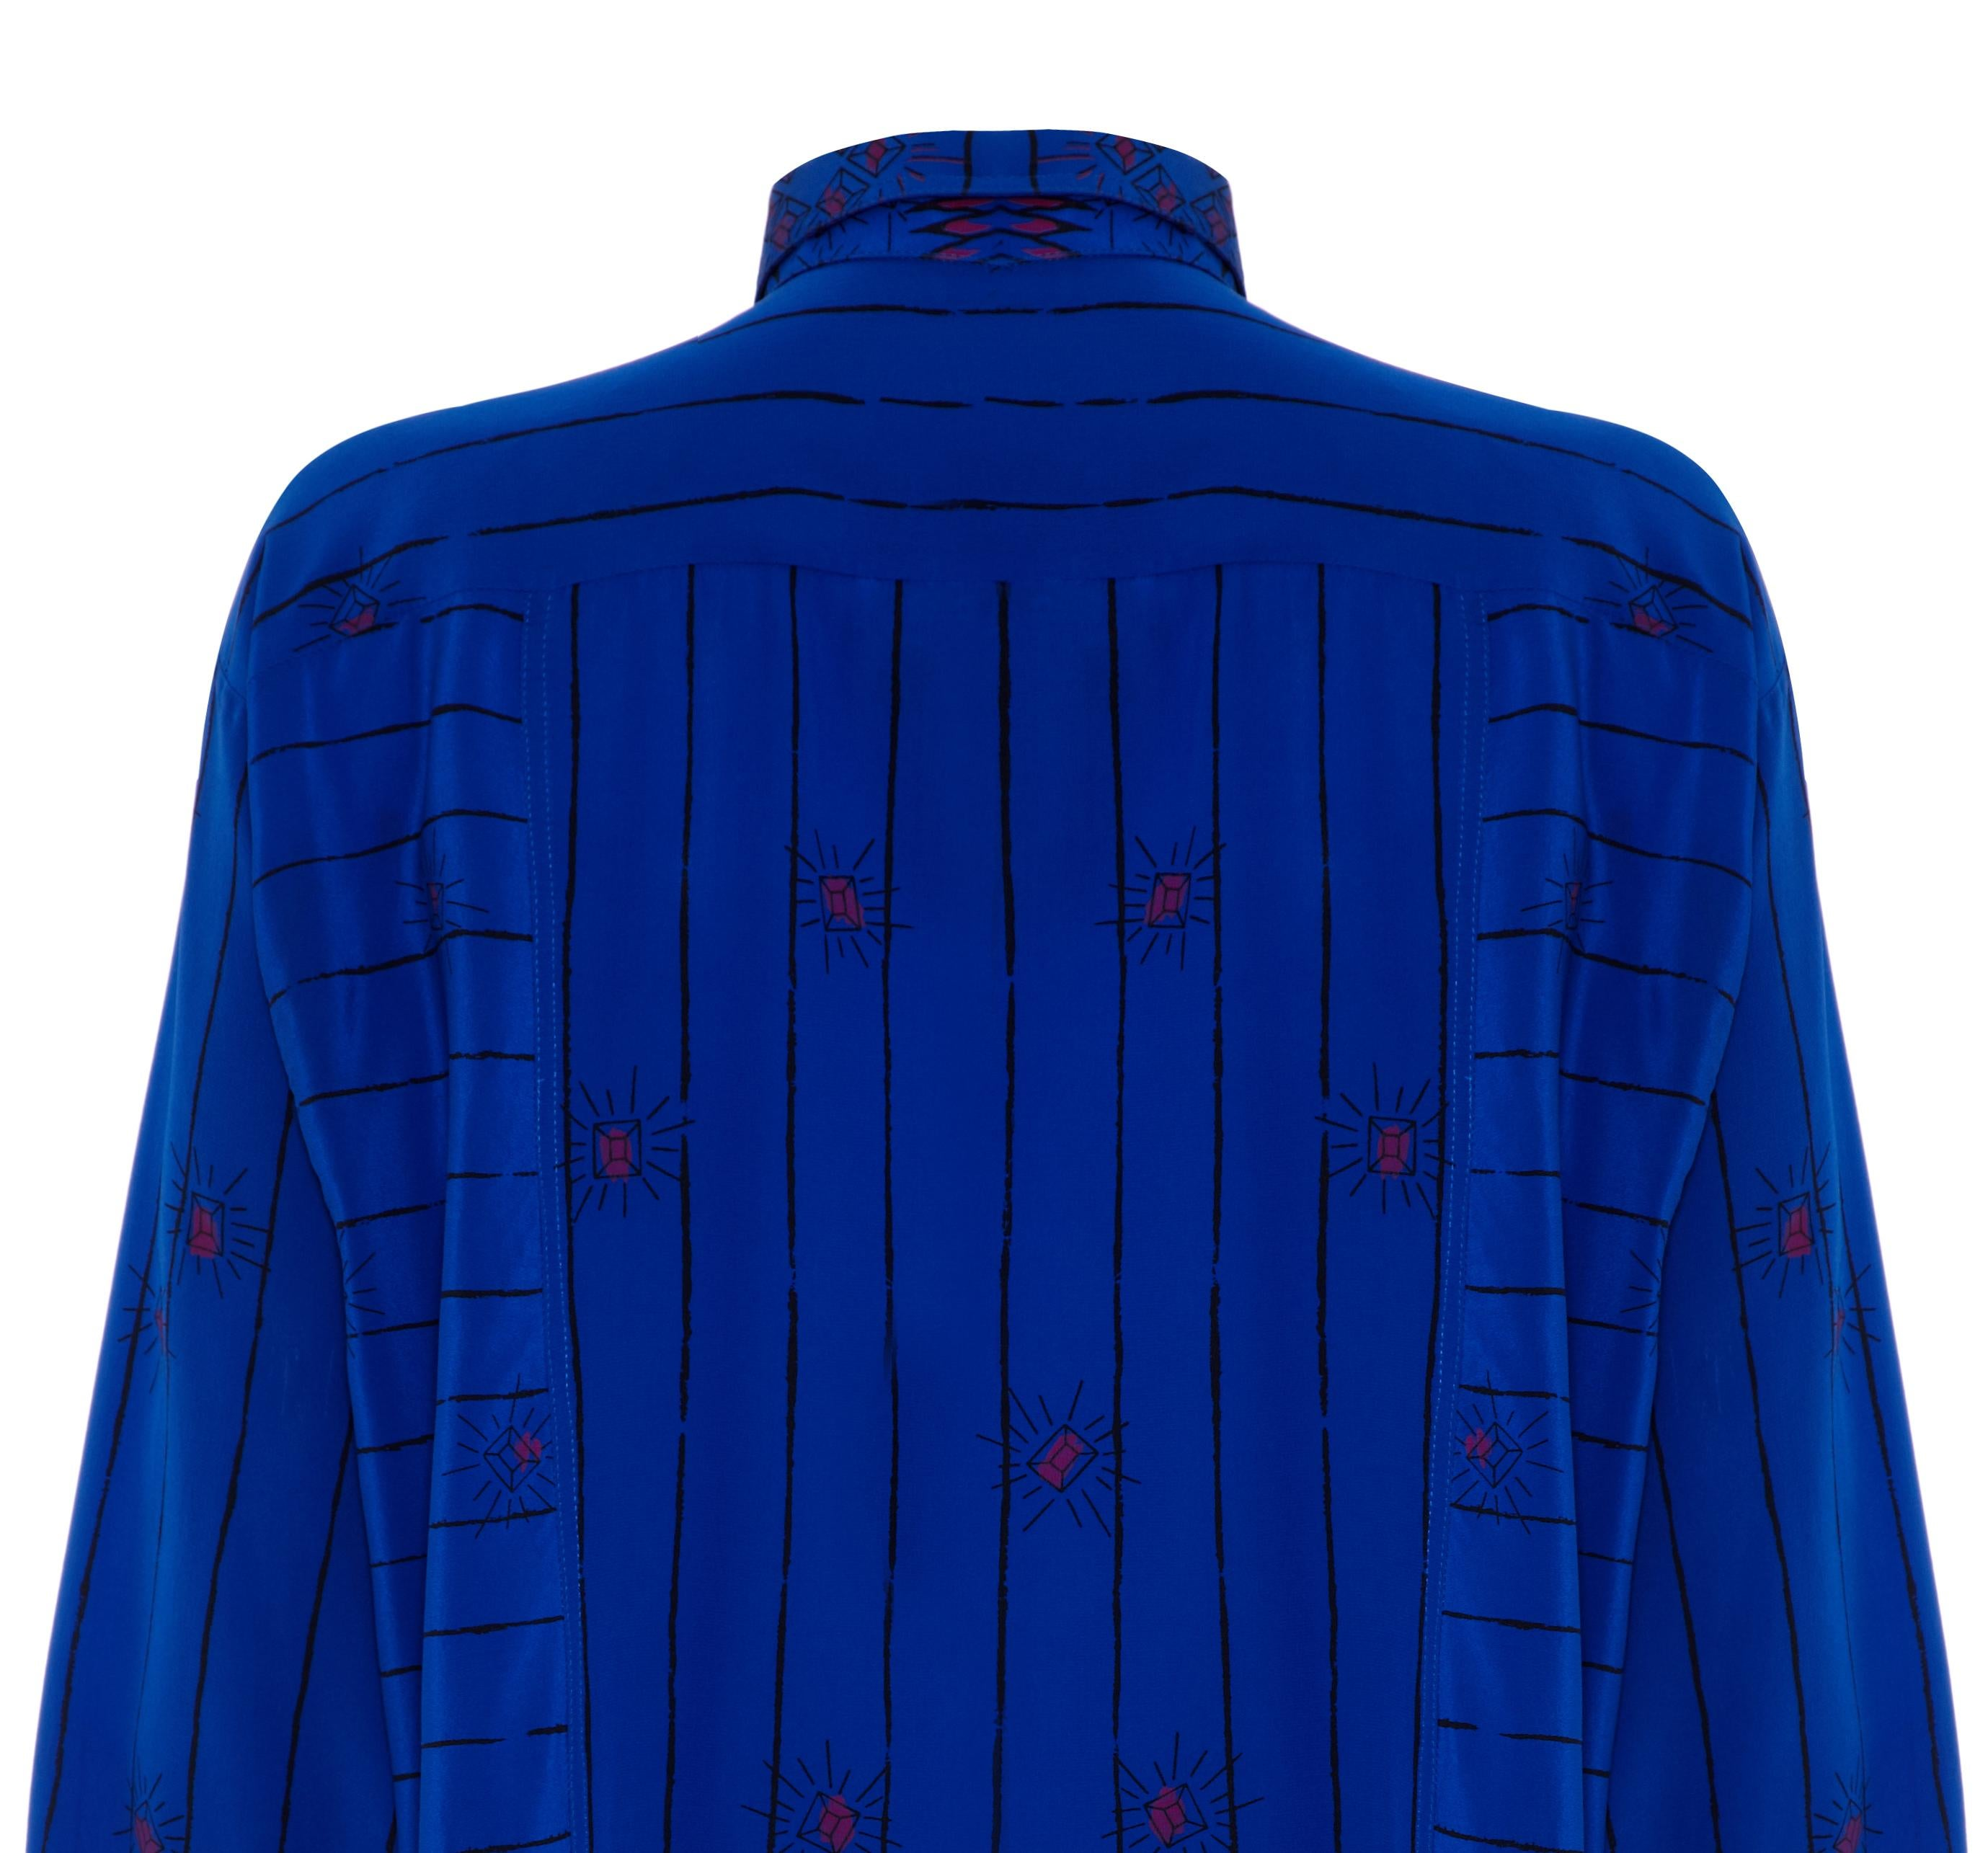 783381c29f99d 1980 s Zandra Rhodes Oversized Blue Silk Print and Embellished Shirt For Sale  at 1stdibs